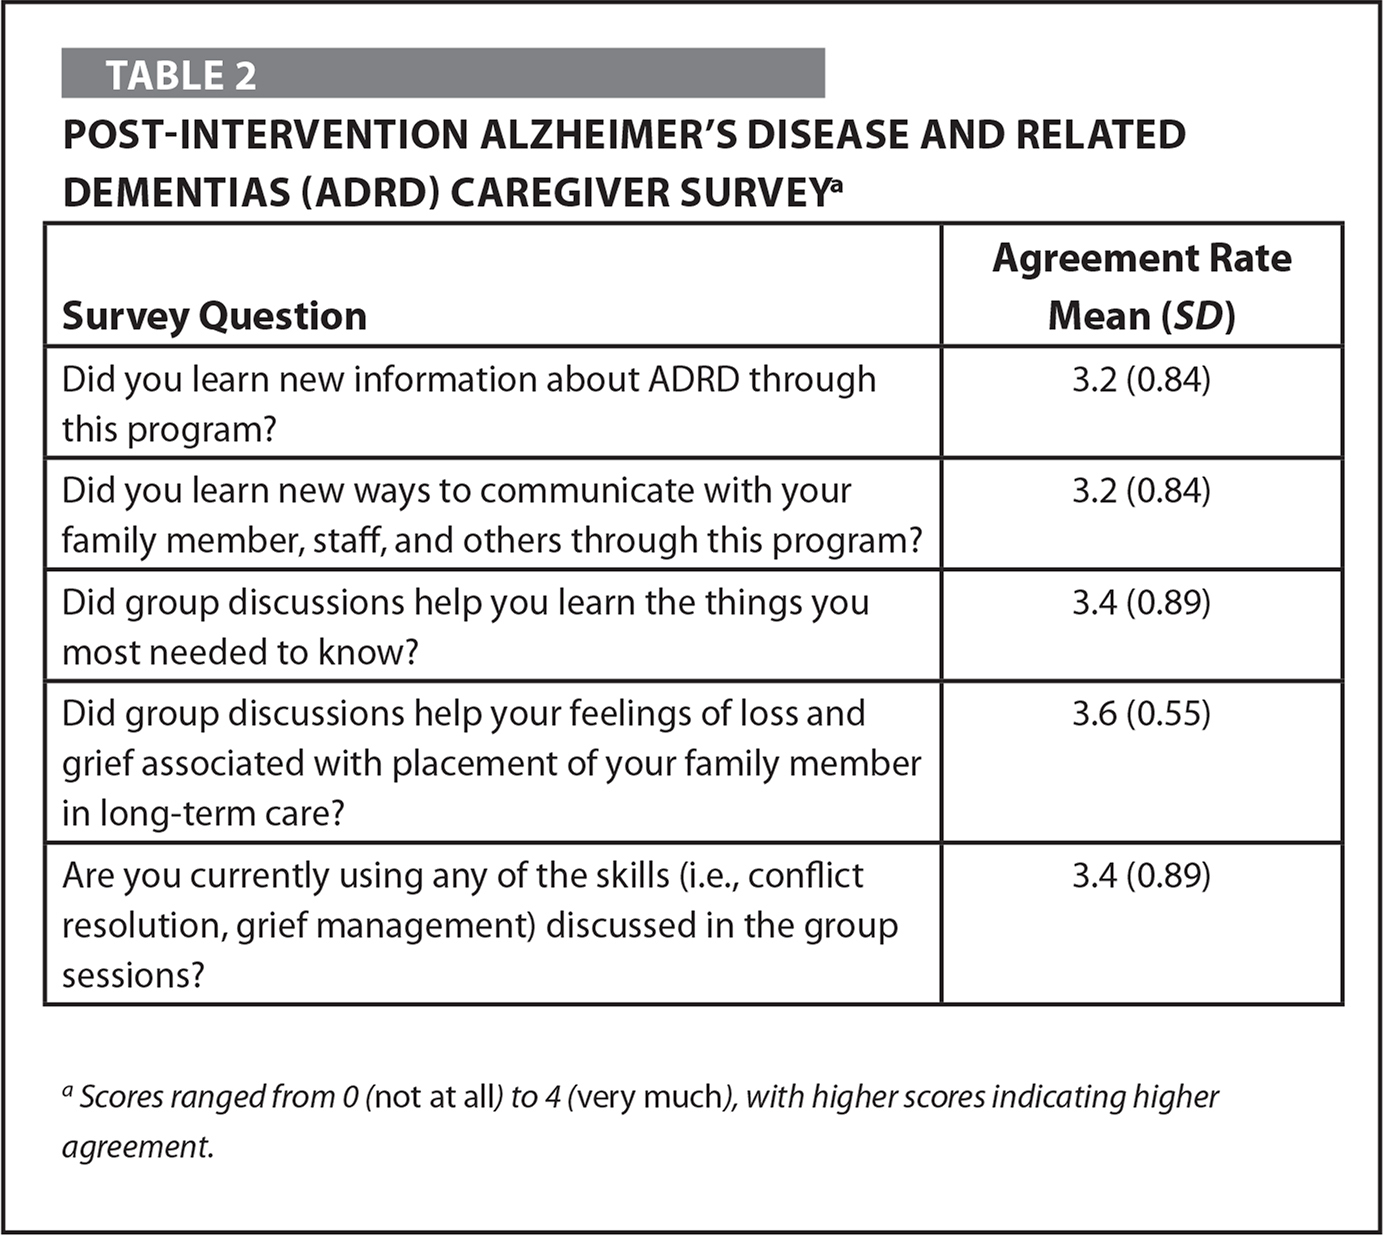 Post-Intervention Alzheimer's Disease and Related Dementias (ADRD) Caregiver Surveya